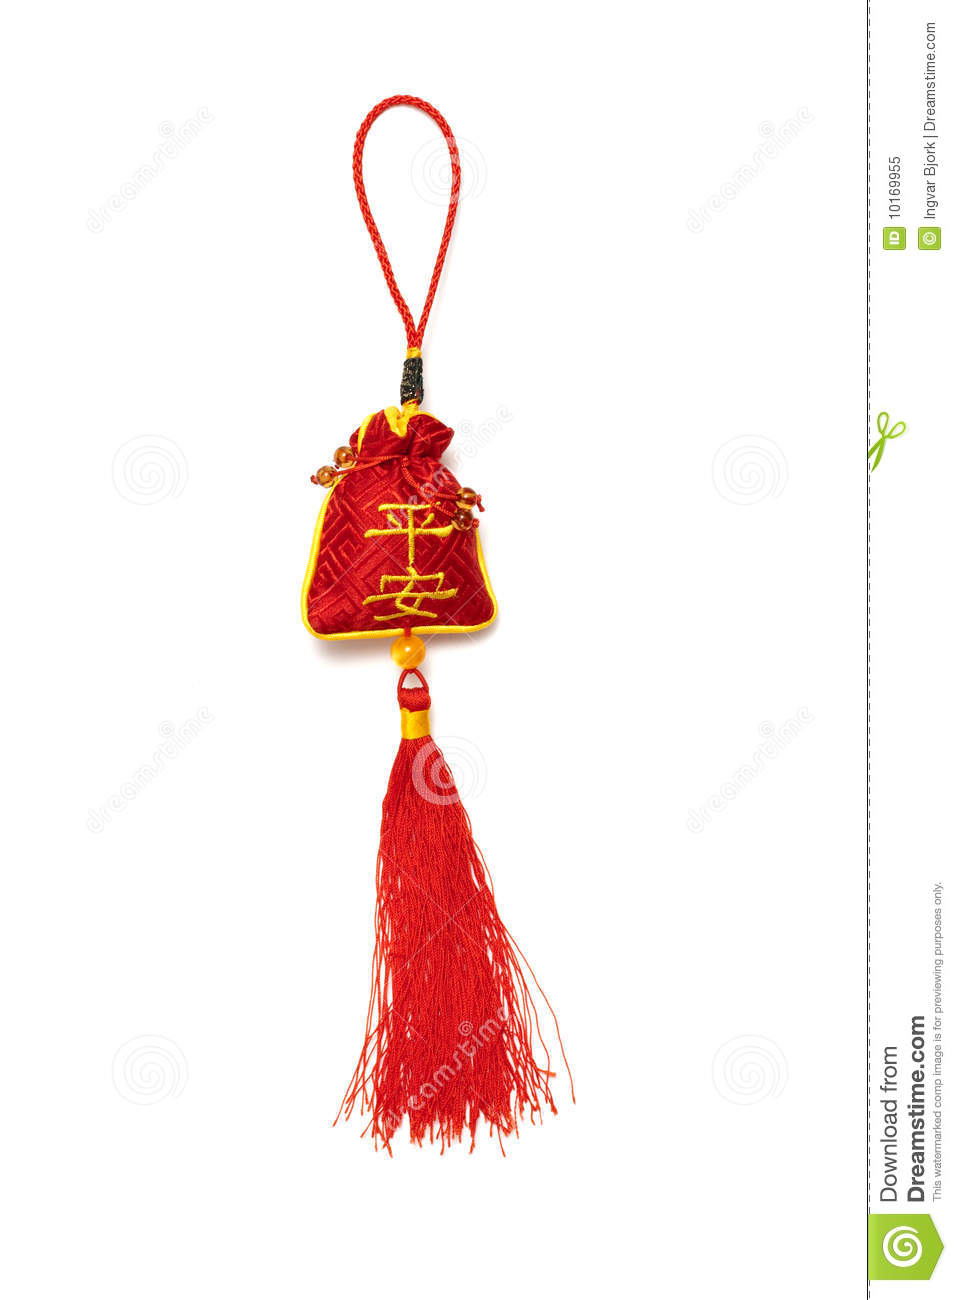 Chinese new year ornament stock image. Image of cutout ...